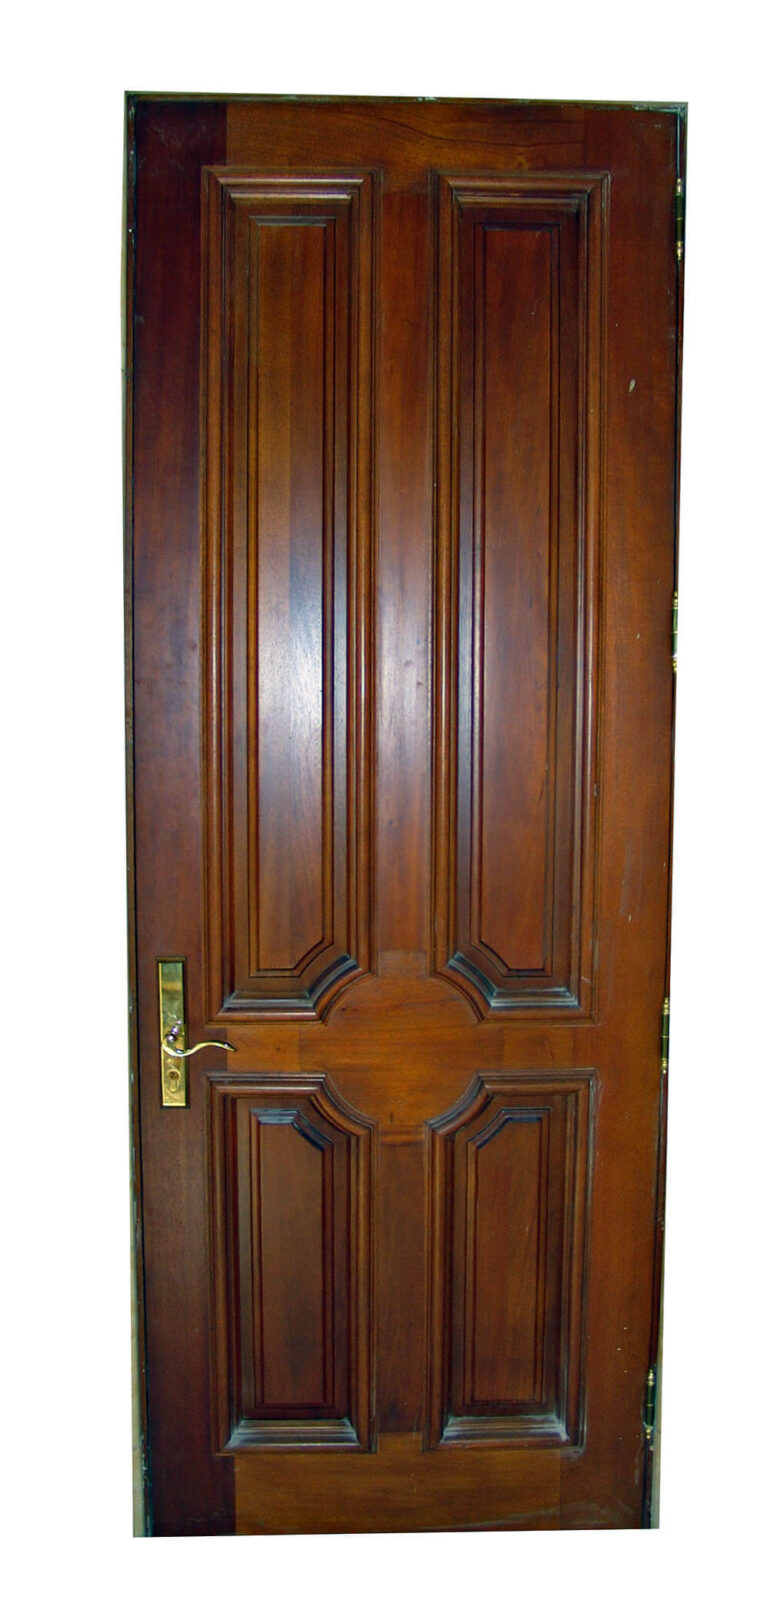 BAL HARBOUR SINGLE INTERIOR DOOR.